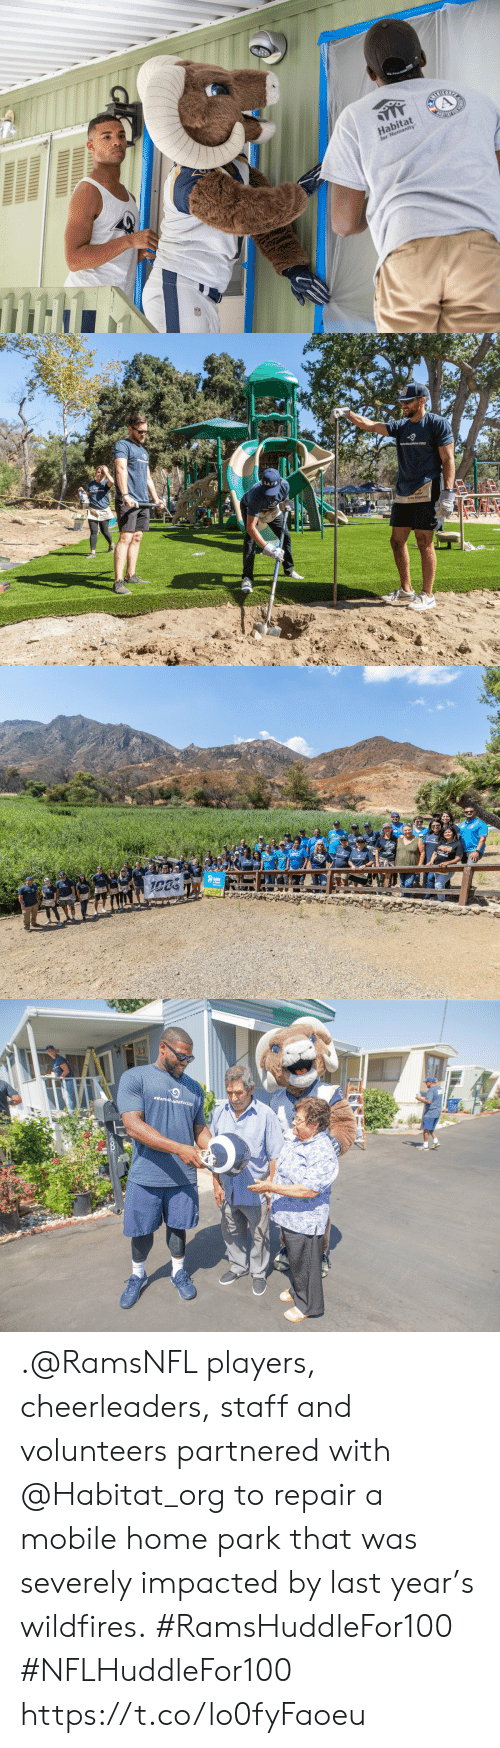 Memes, Home, and Mobile: Habitat  for Humanity   .@RamsNFL players, cheerleaders, staff and volunteers partnered with @Habitat_org to repair a mobile home park that was severely impacted by last year's wildfires.  #RamsHuddleFor100 #NFLHuddleFor100 https://t.co/lo0fyFaoeu